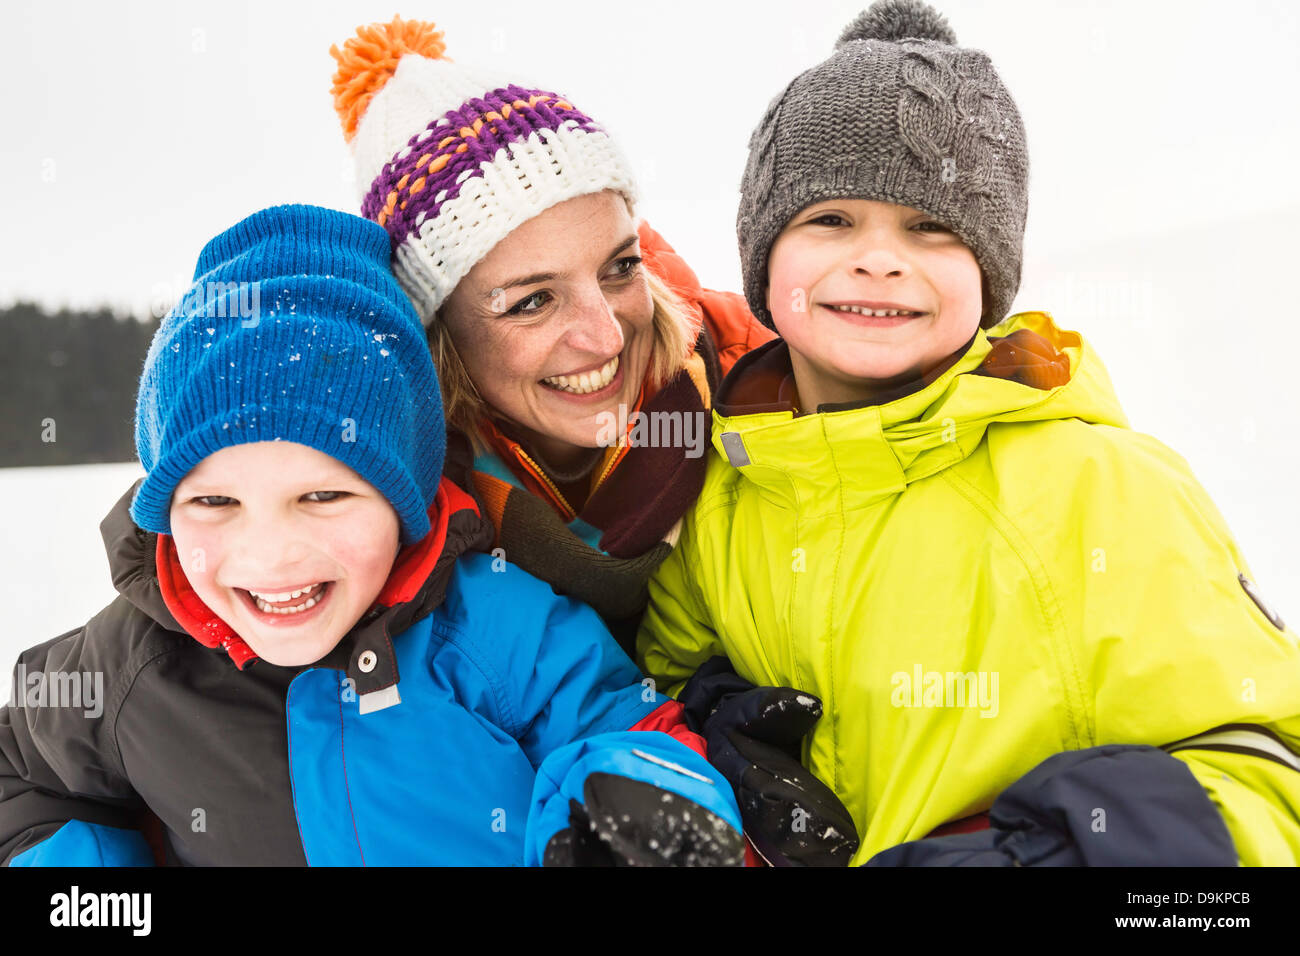 Mother with two boys wearing knit hats - Stock Image